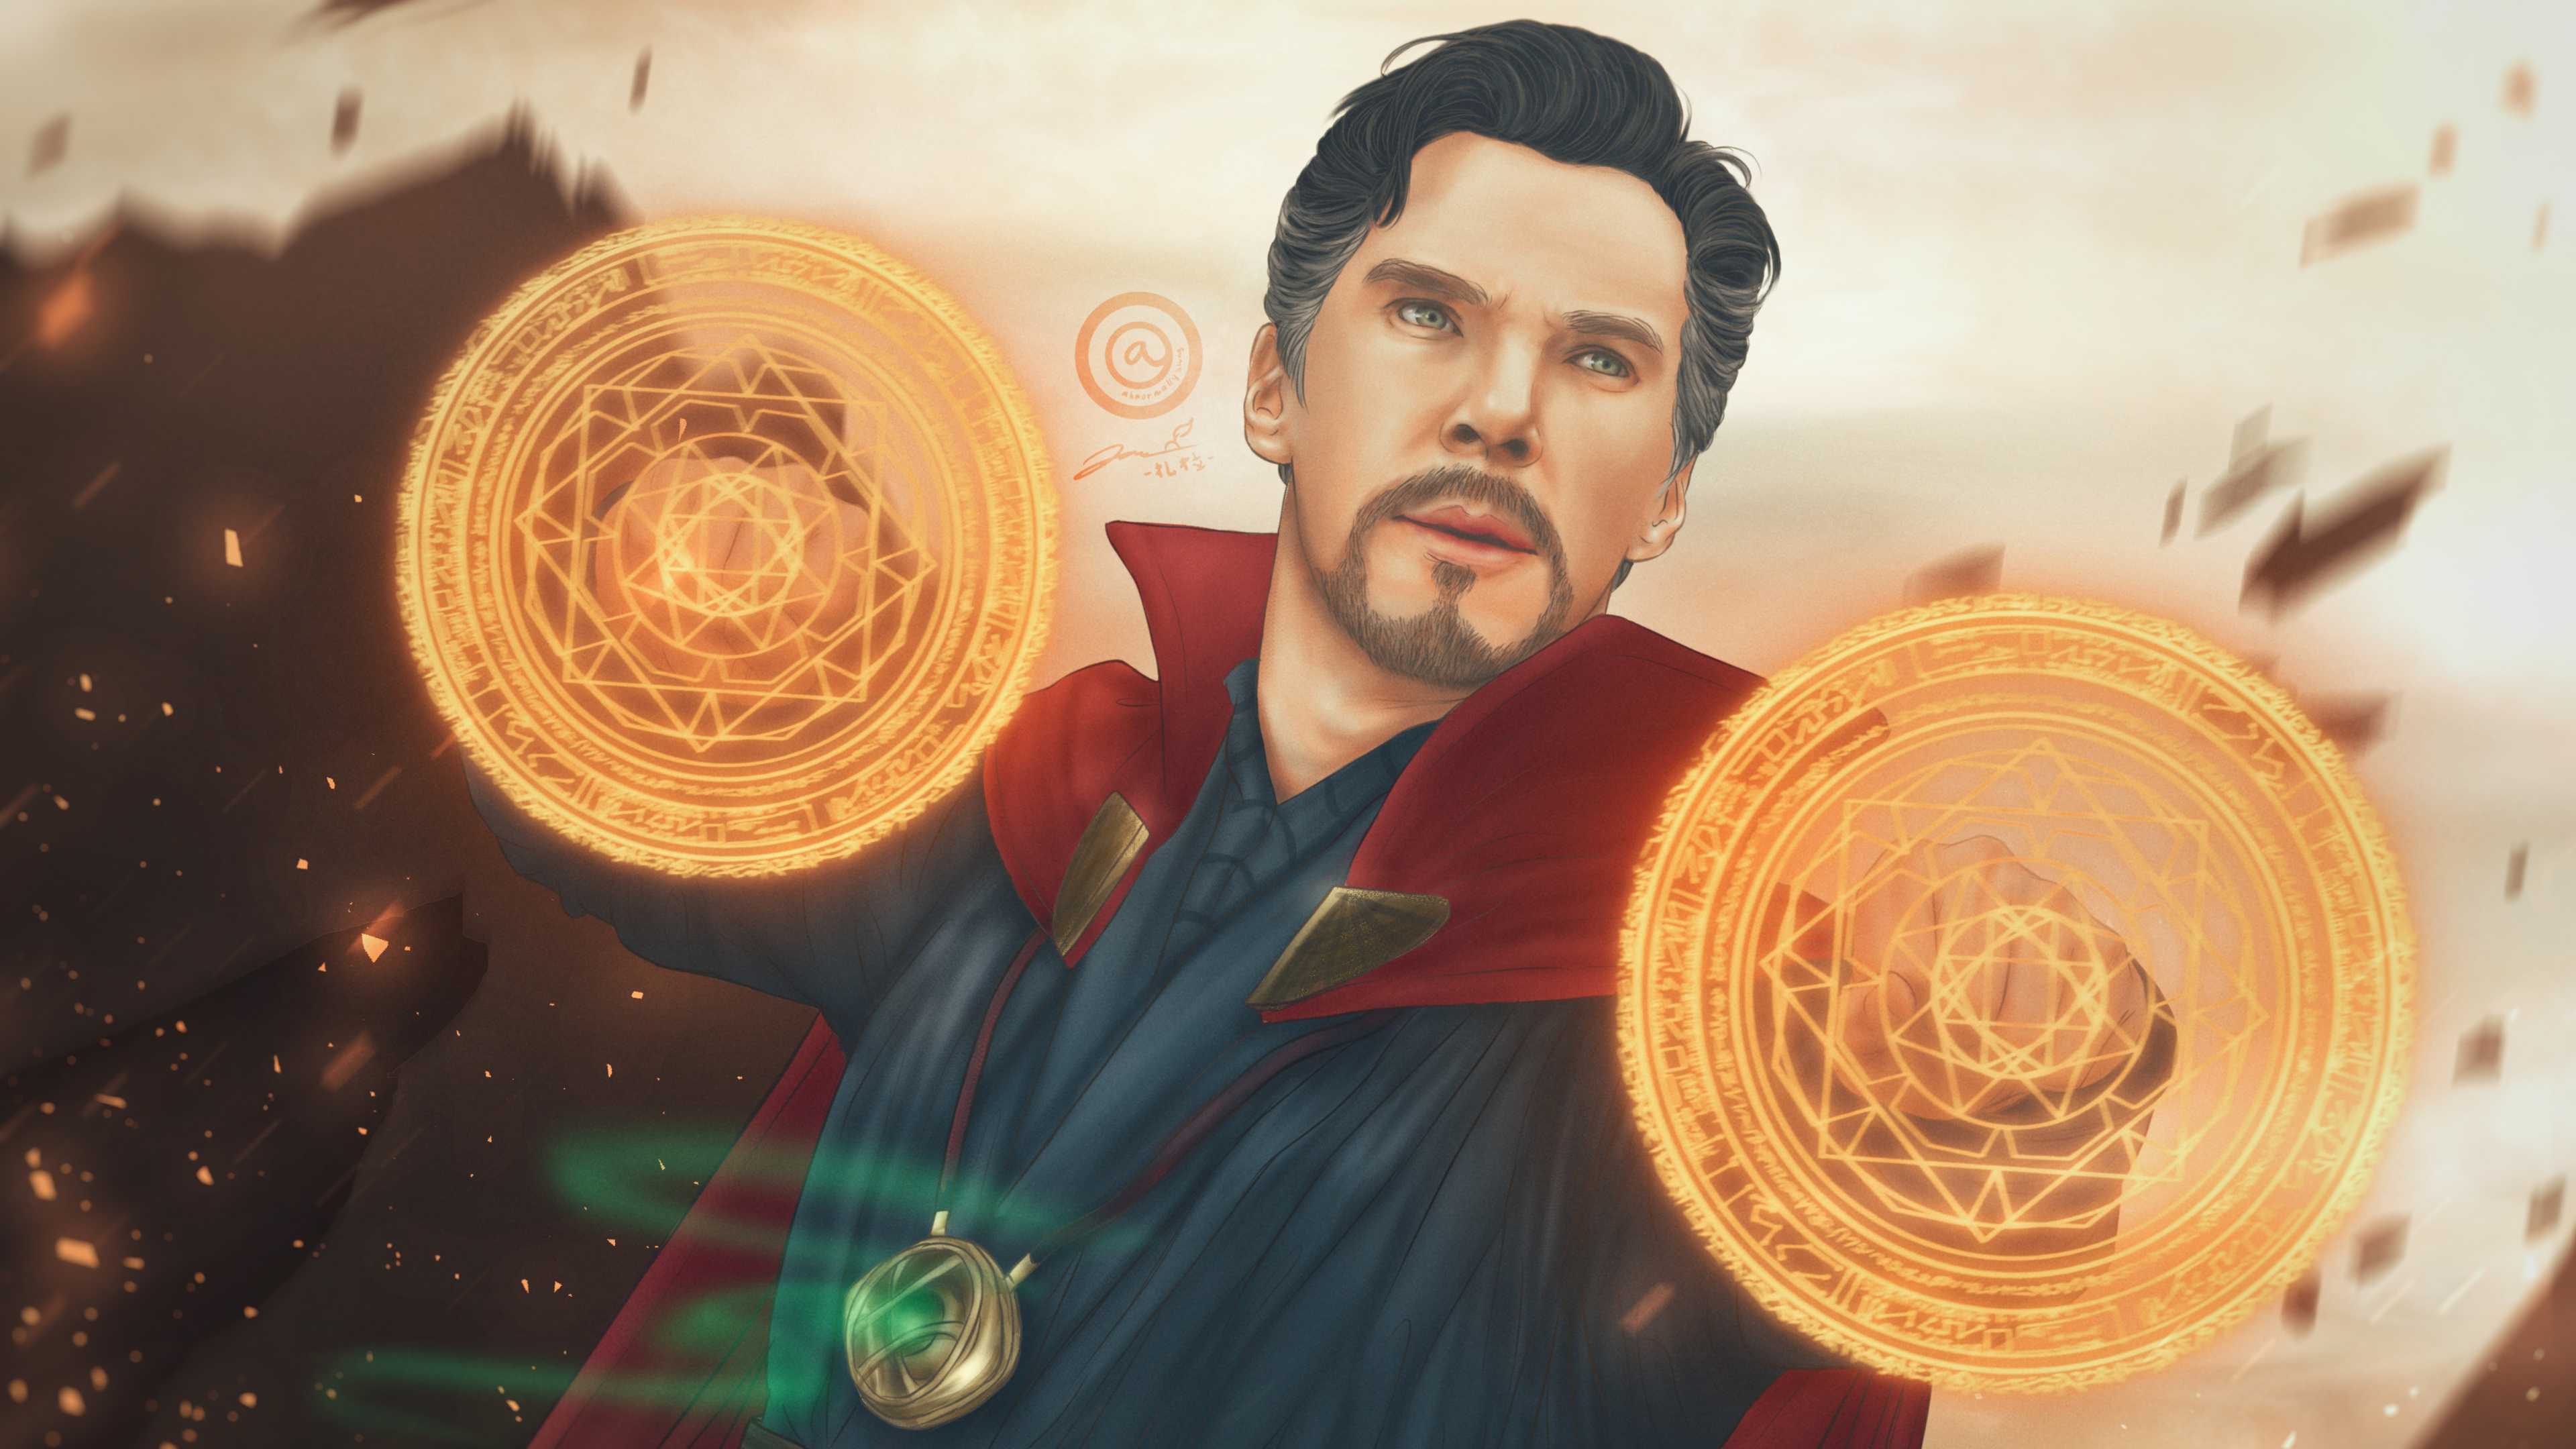 doctor strange art 1565052849 - Doctor Strange art - superheroes wallpapers, hd-wallpapers, doctor strange wallpapers, digital art wallpapers, artwork wallpapers, 4k-wallpapers